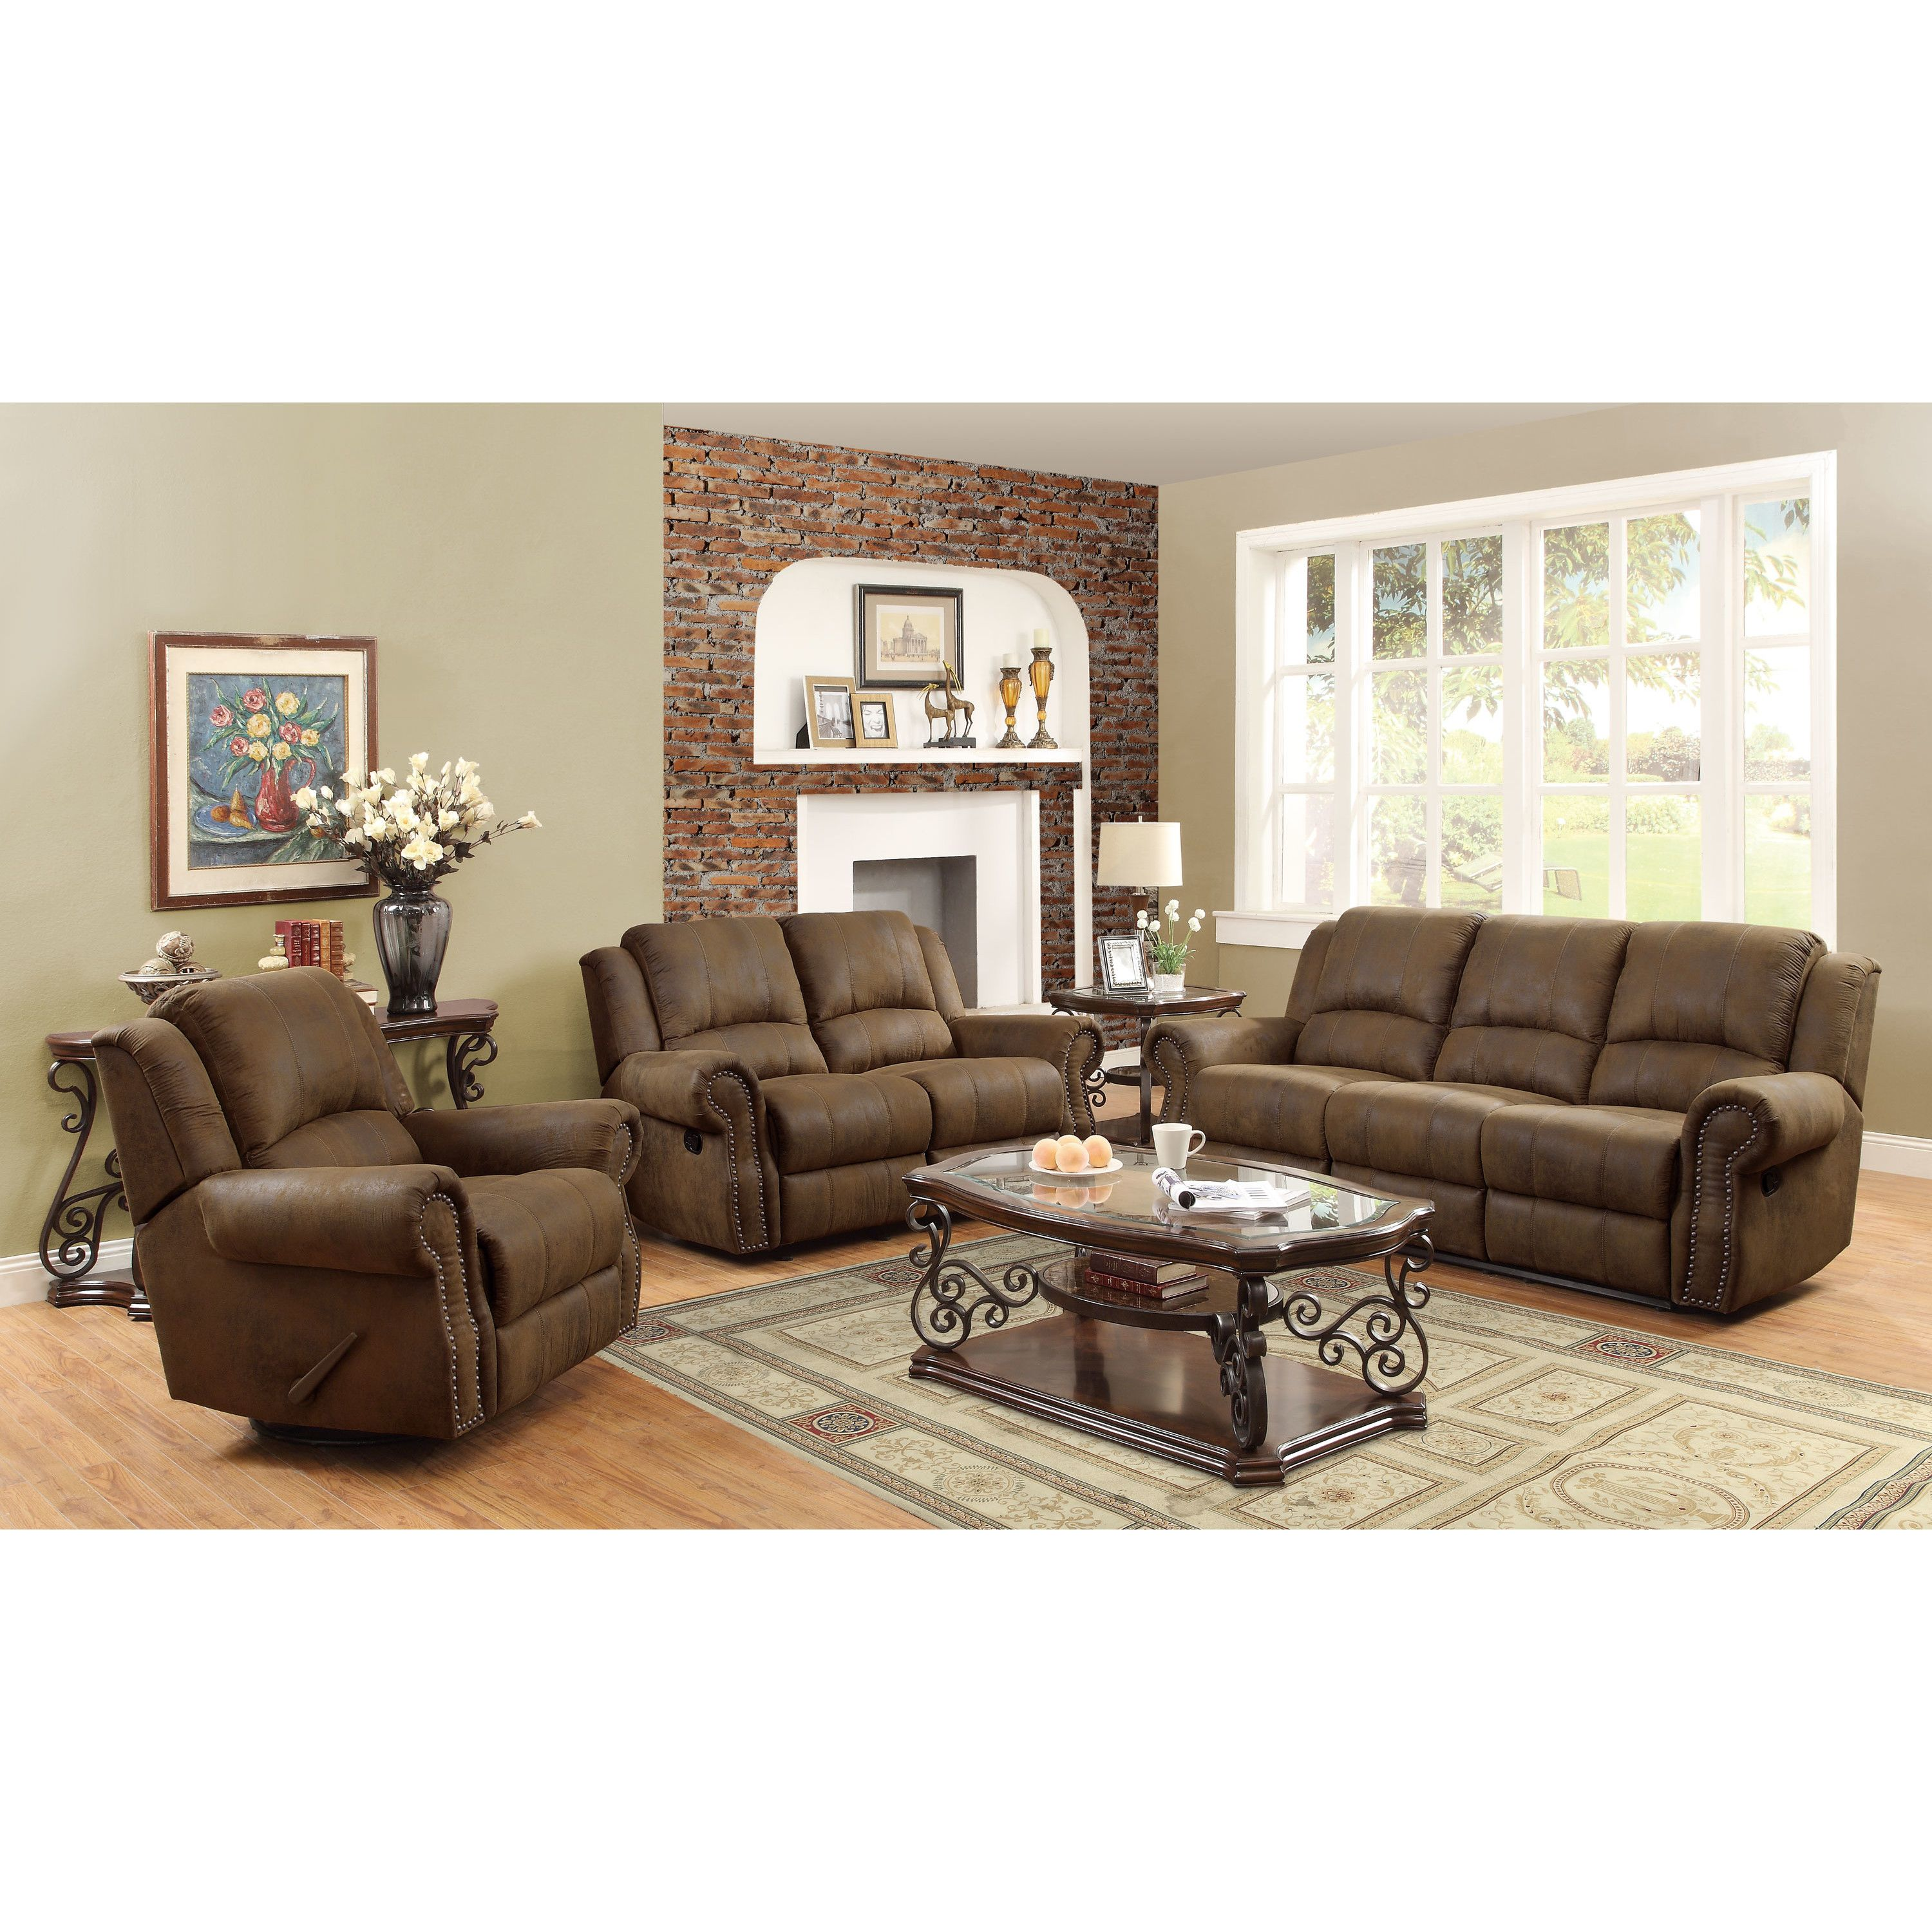 Ordinaire Darby Home Co Mcmahon Reclining Sofa